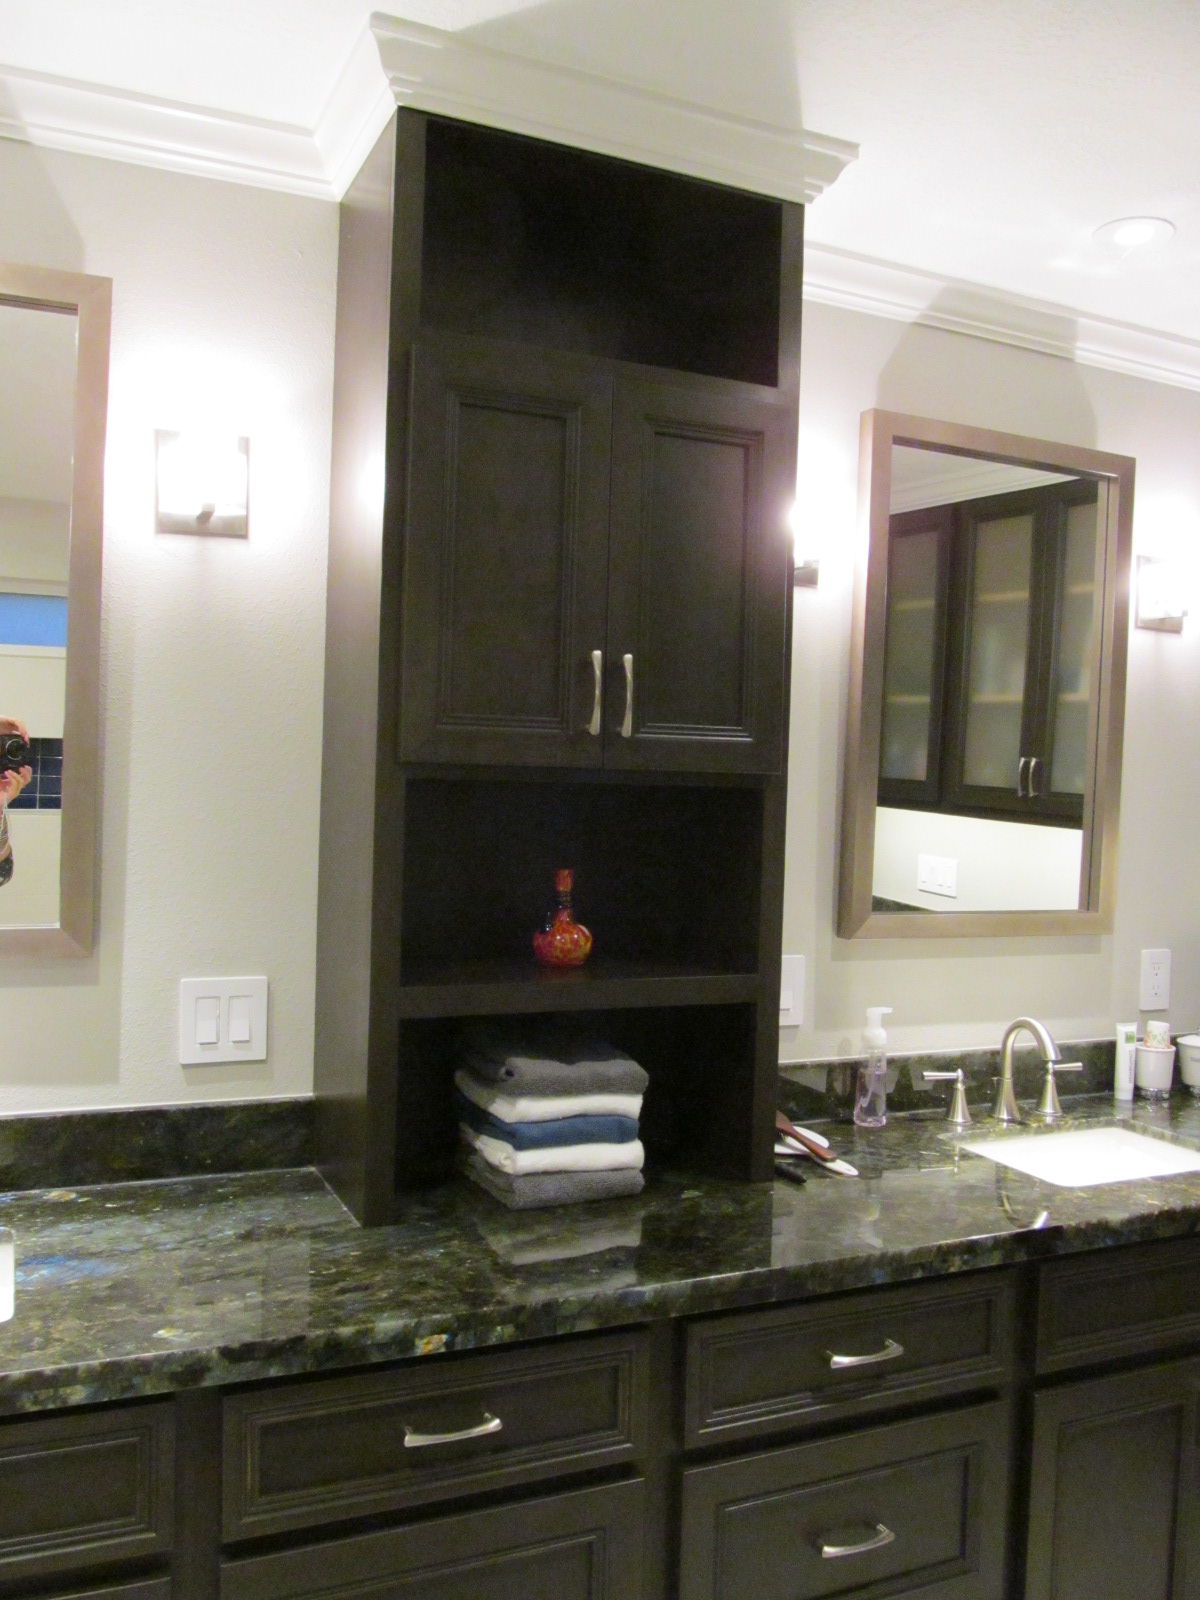 Cabinet tower is perfect for the space.JPG